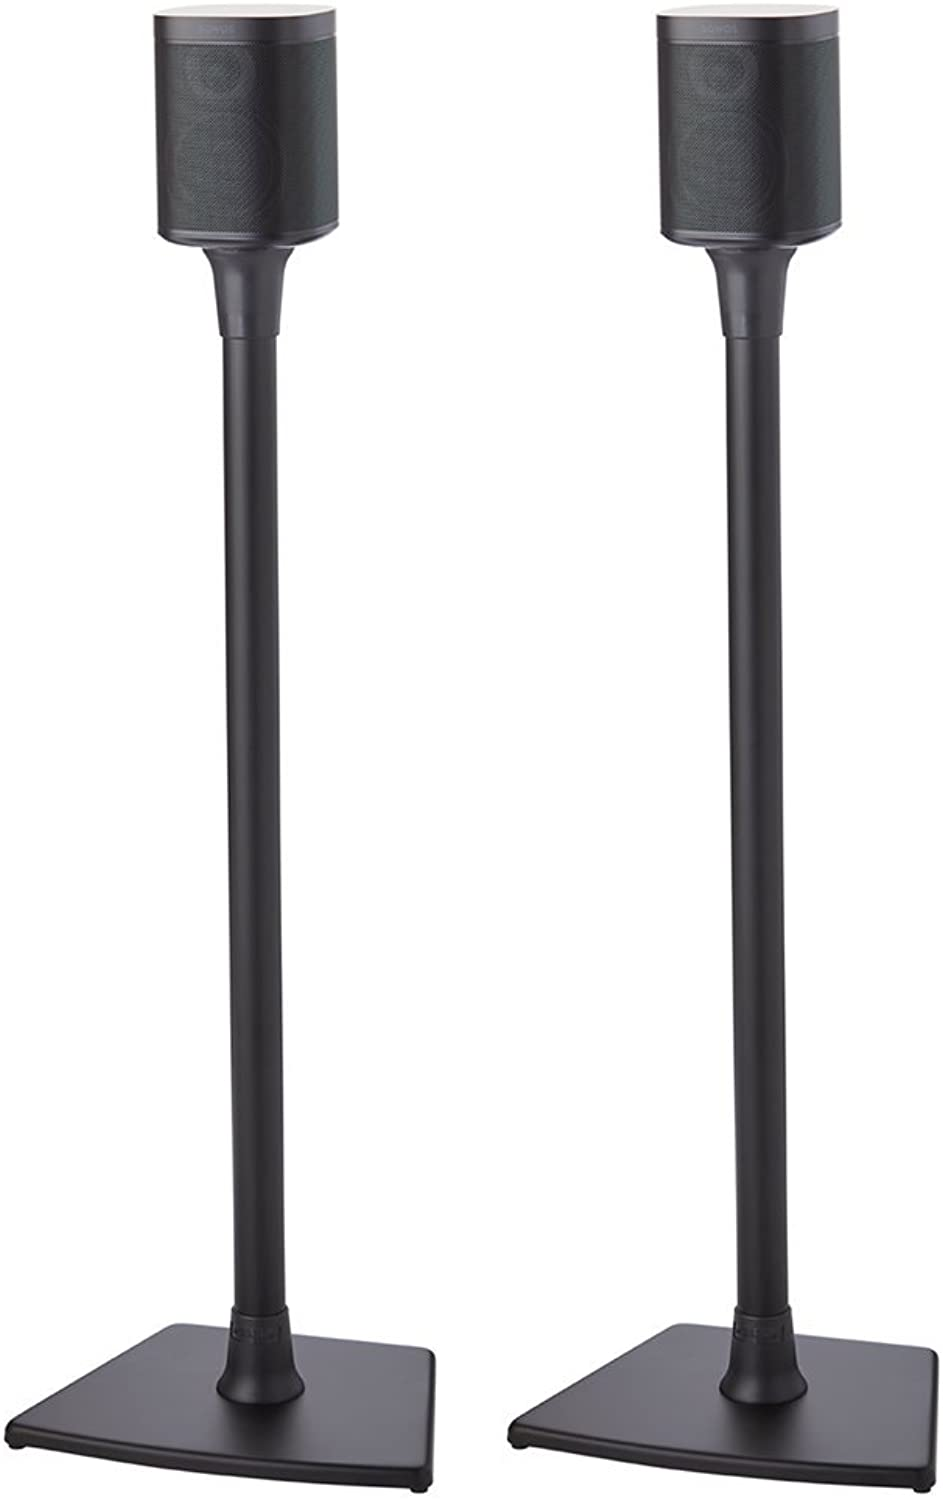 Sanus Wireless Sonos Speaker Stand for Sonos One, Play 1, Play 3 - Audio-Enhancing Design with Built-in Cable Management - Pair (Black) - WSS22-B1